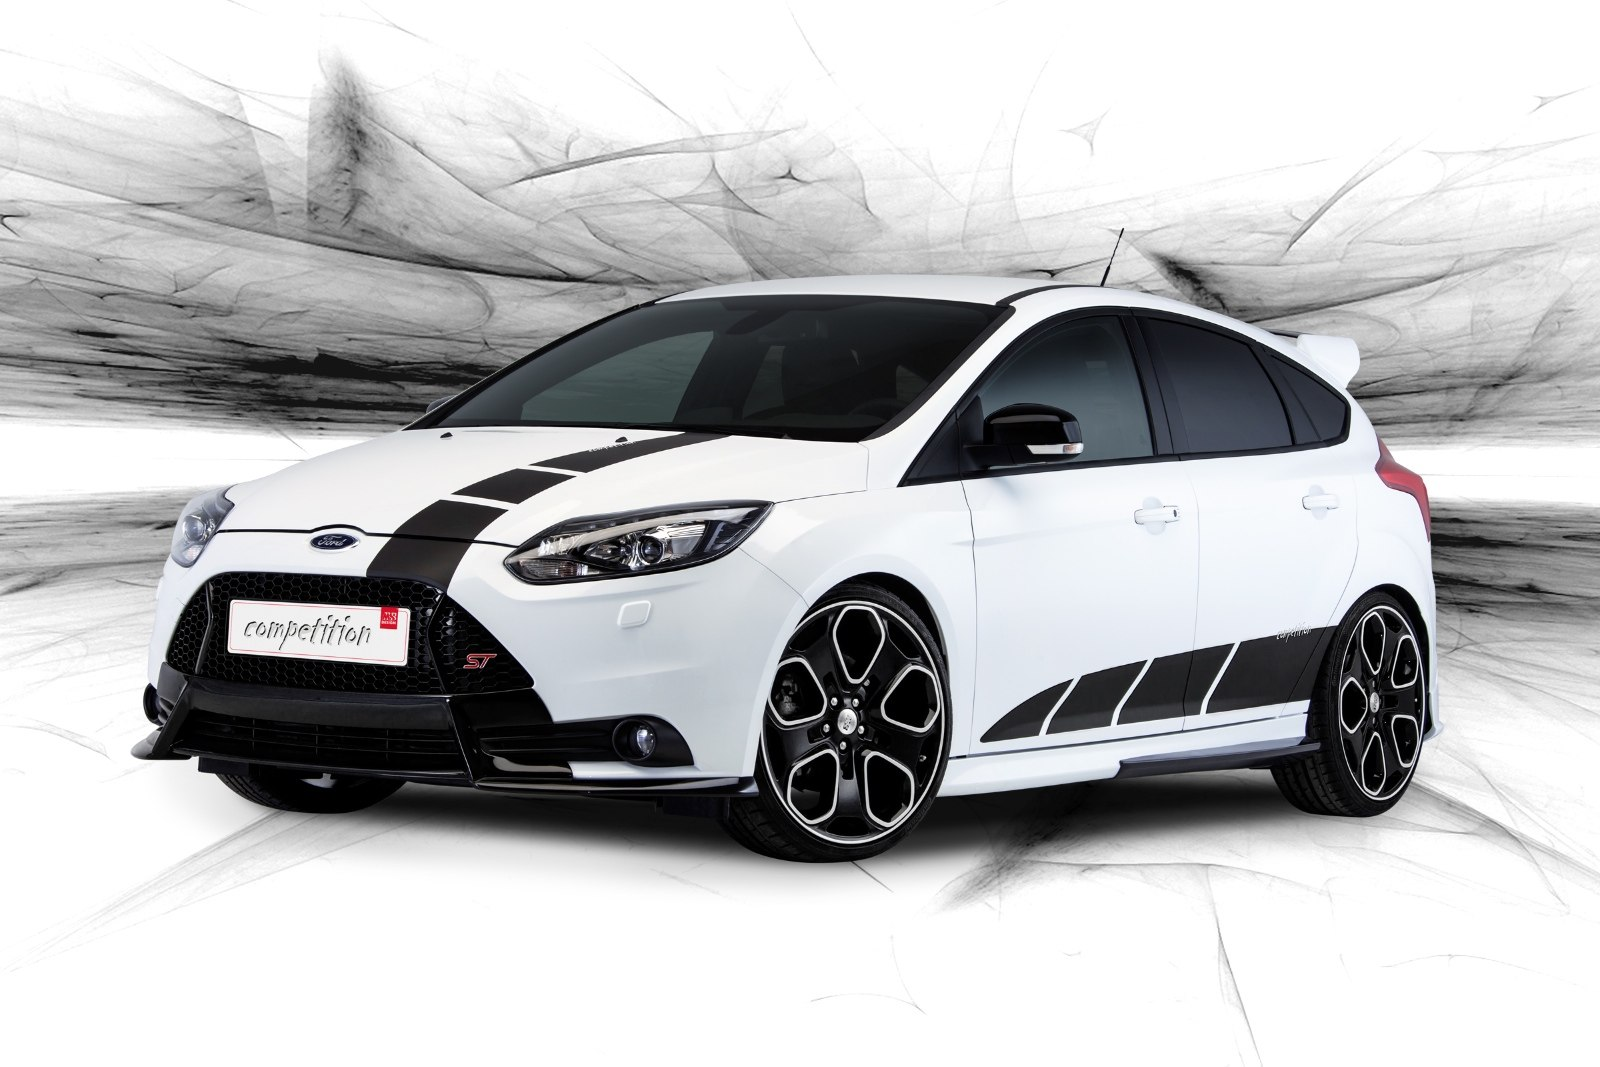 New Ford Focus ST 2013 HD Wallpaper of Car   hdwallpaper2013com 1600x1067